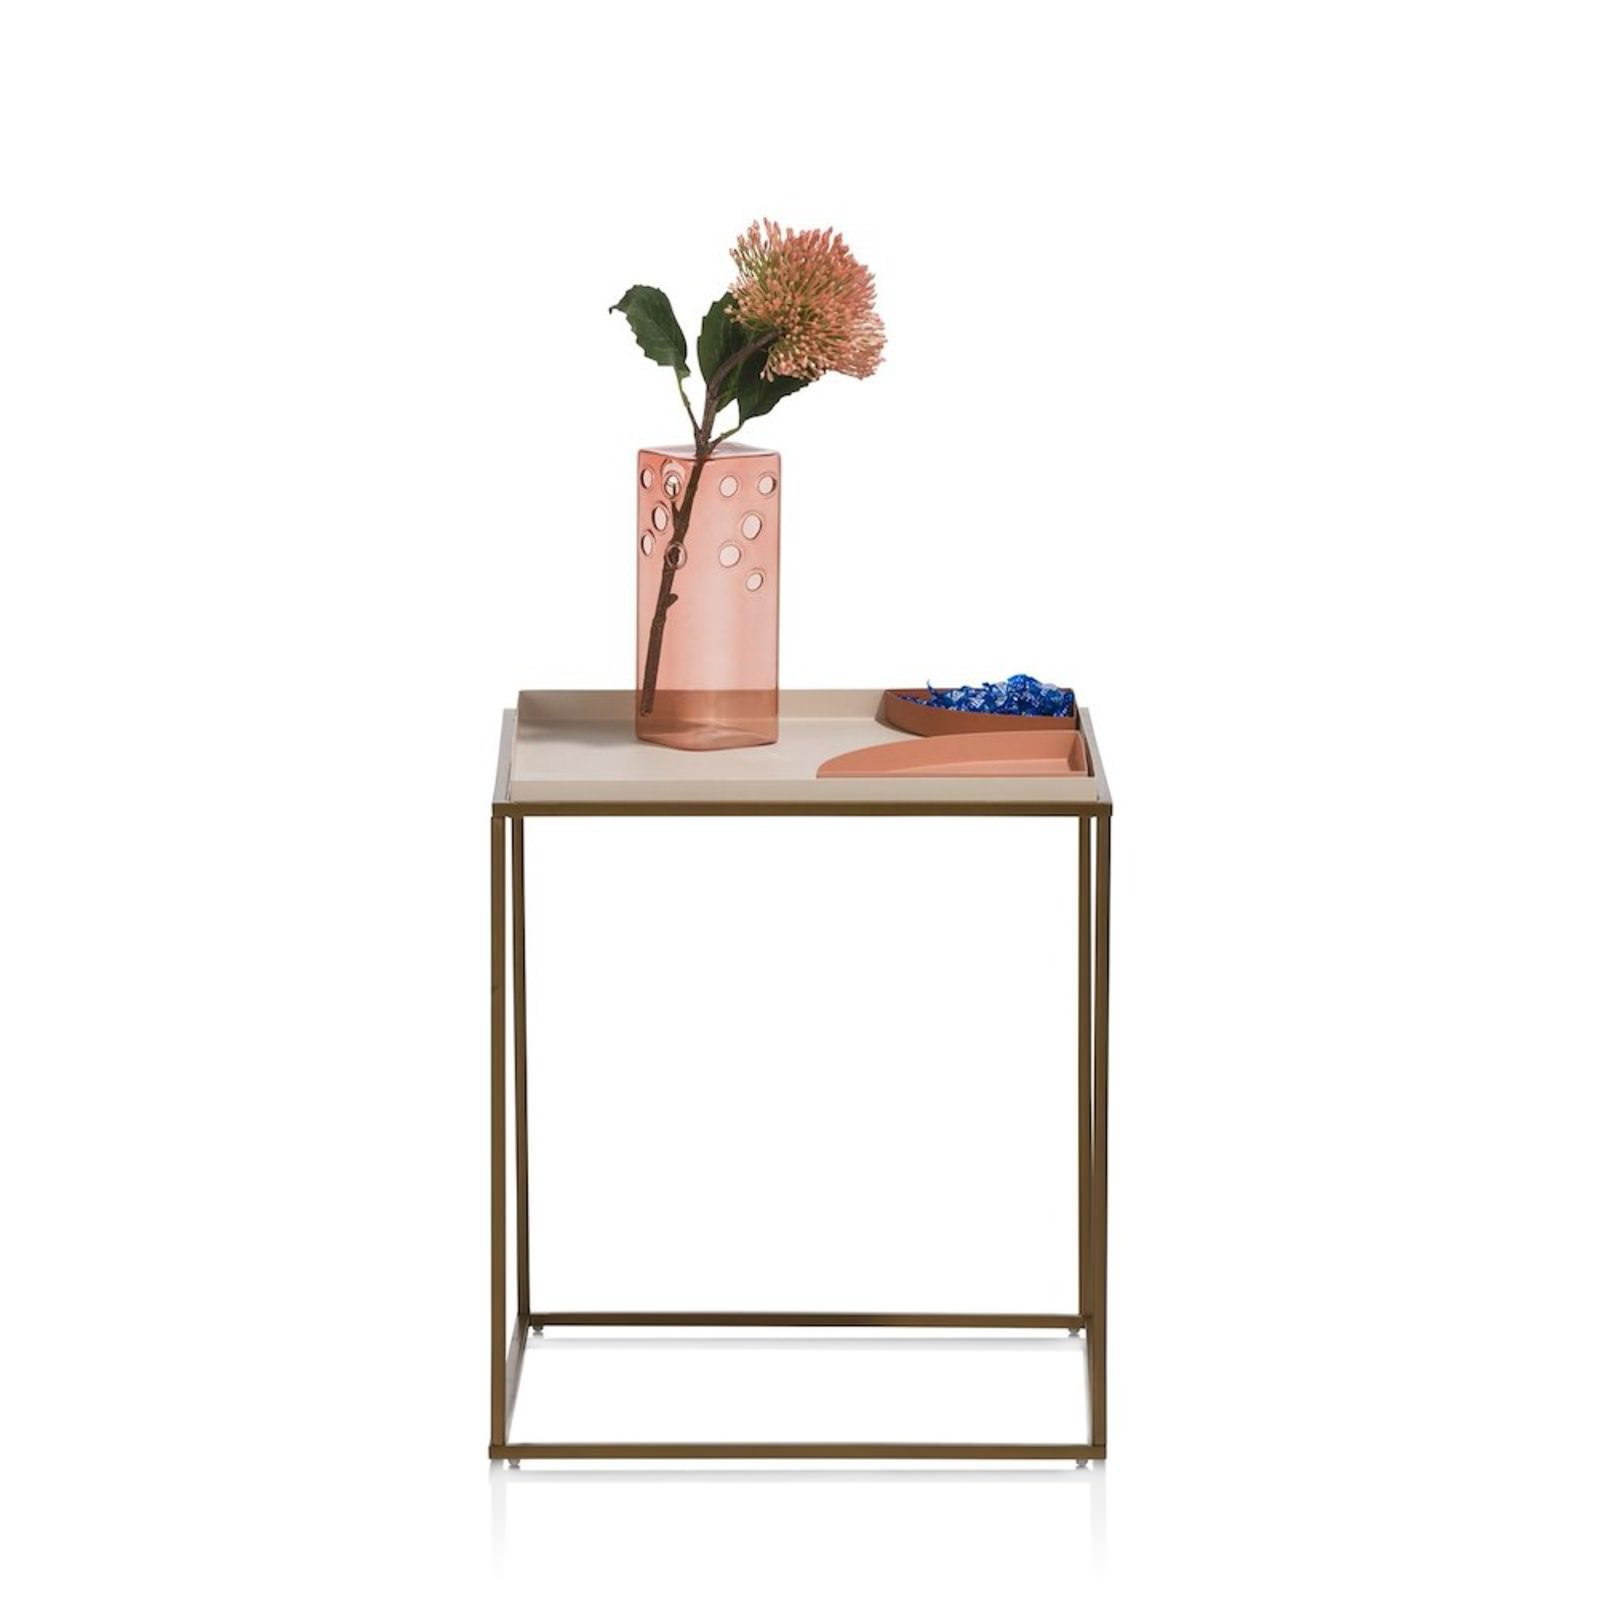 ROXIE TABLE D'APPOINT 40 X 40 CM